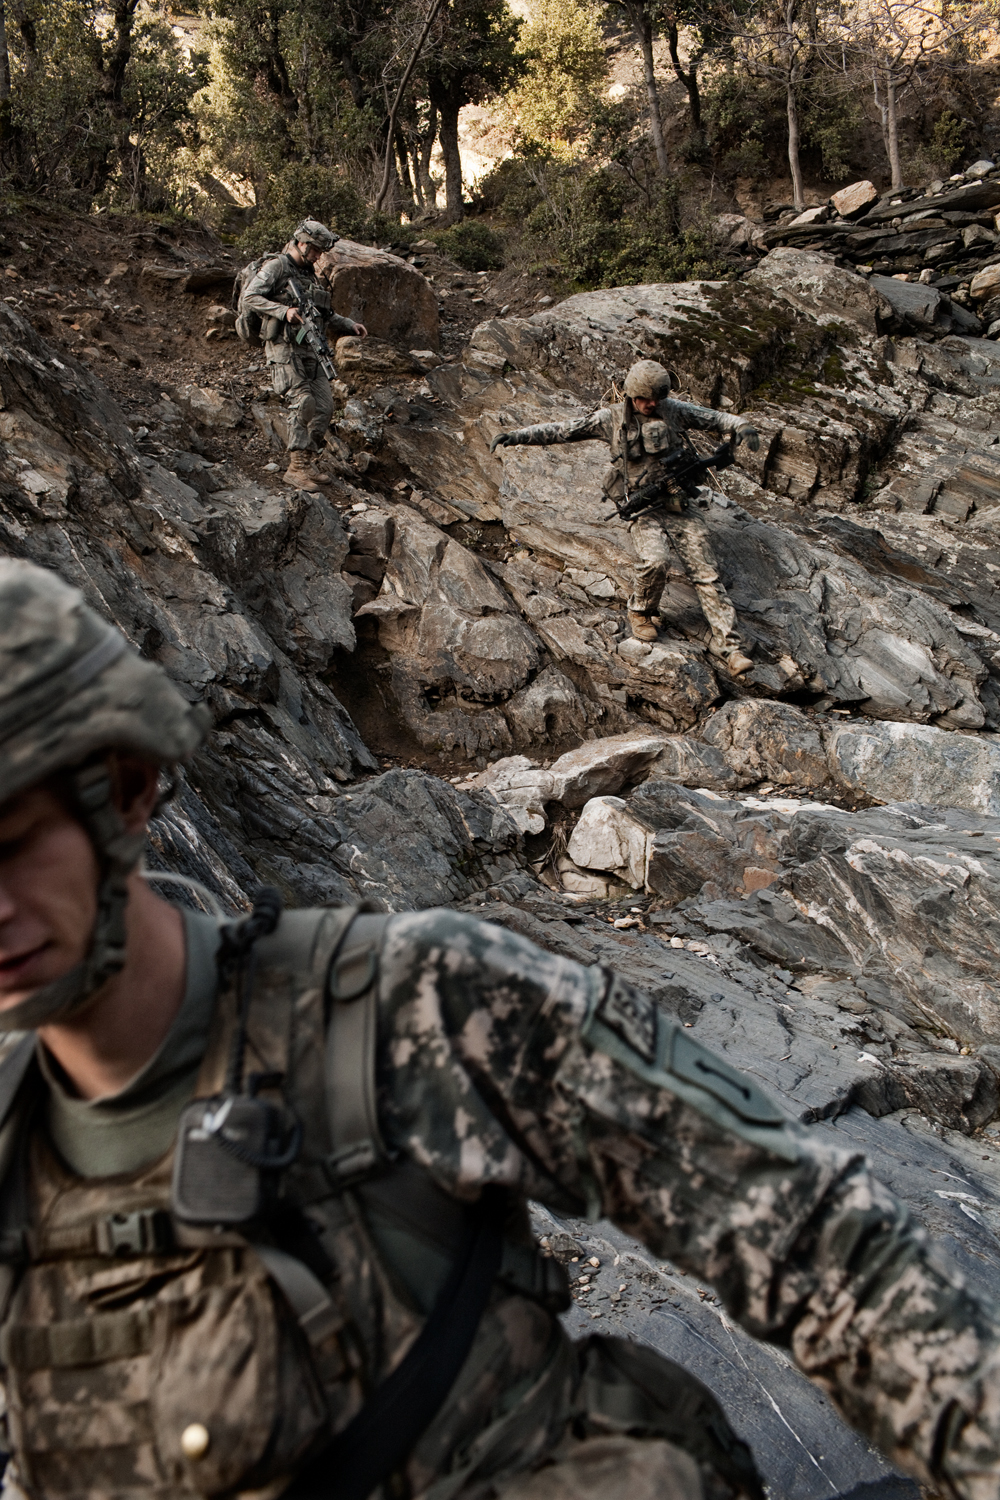 U.S. Army soldiers patrol in the Korengal Valley, Kunar Province, Afghanistan.